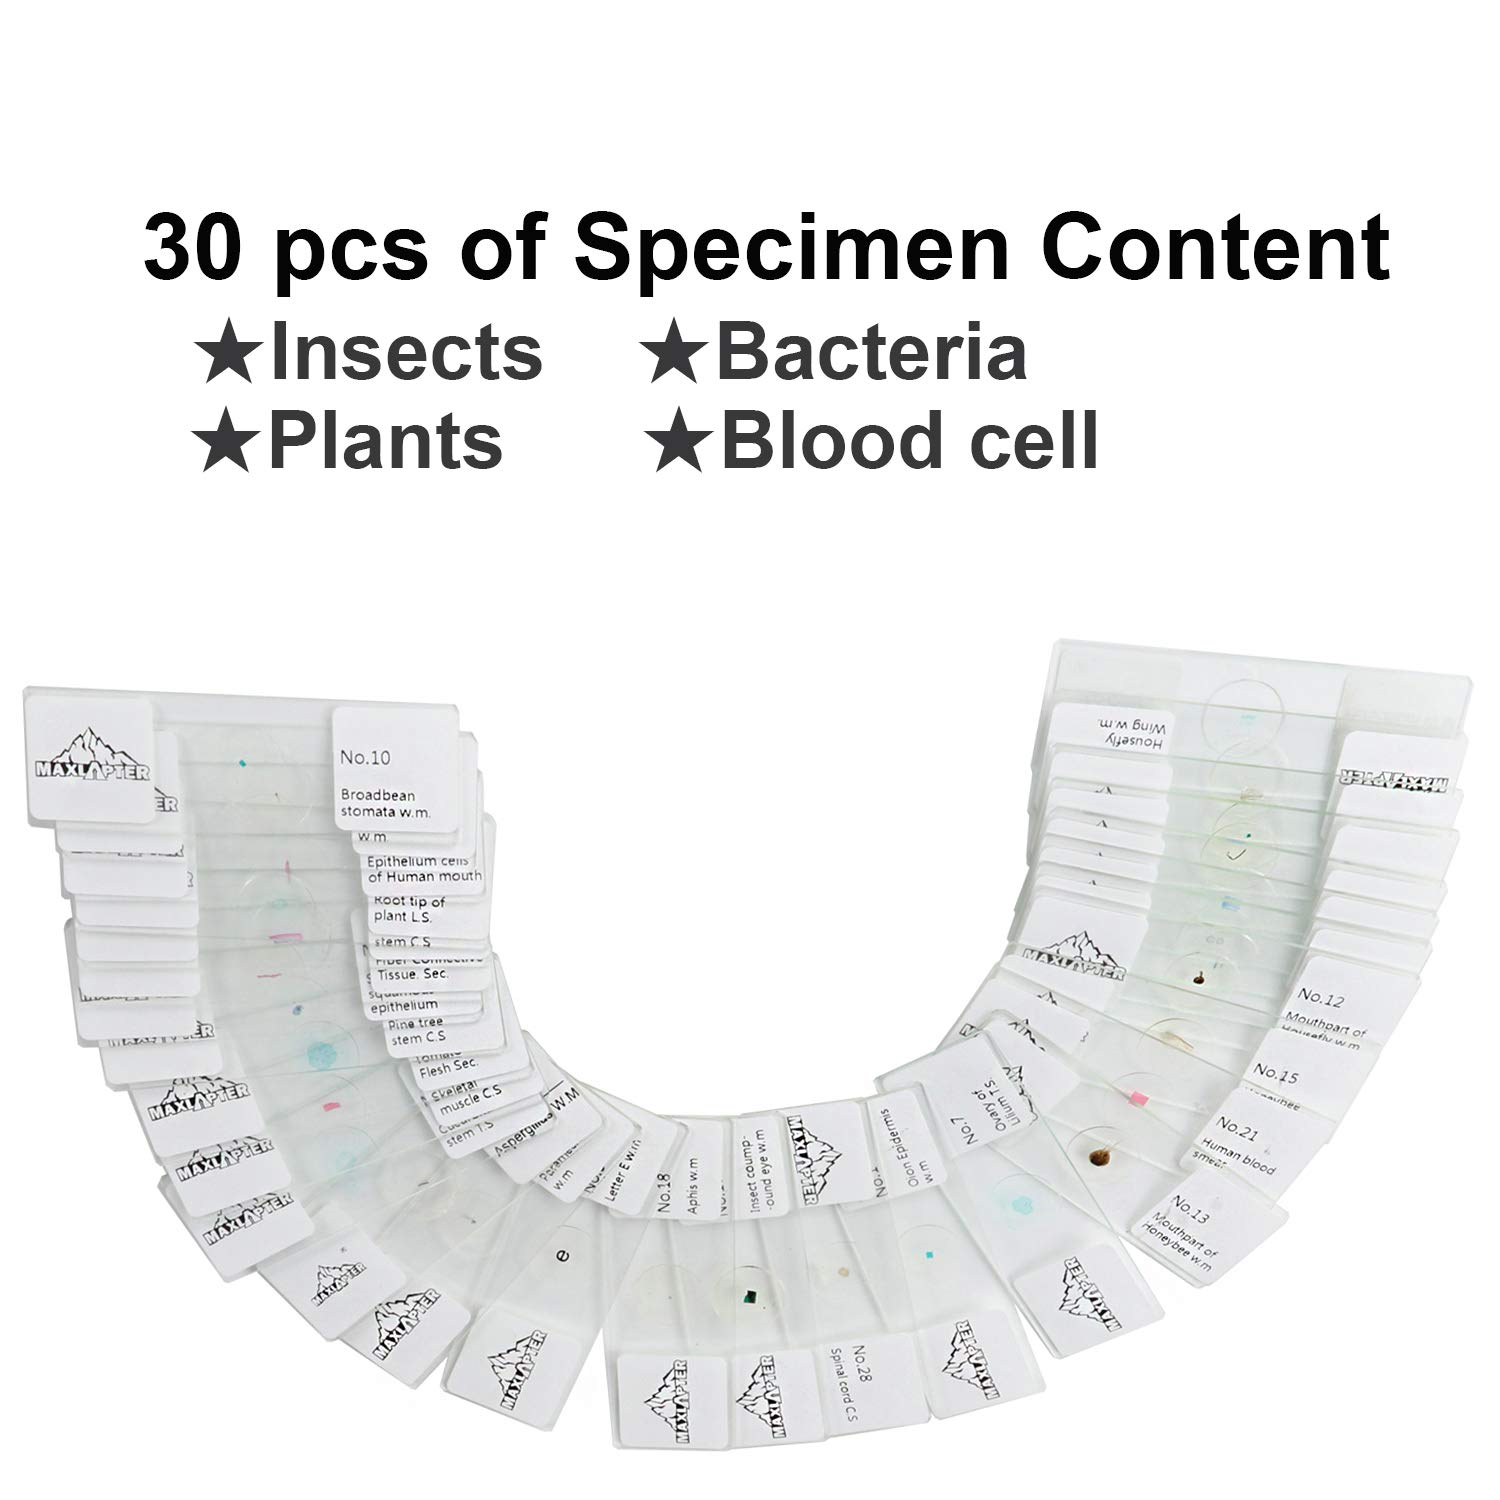 50 pcs Microscope Slides Prepared with Specimen for Students Biology and Science Early Education MAXLAPTER